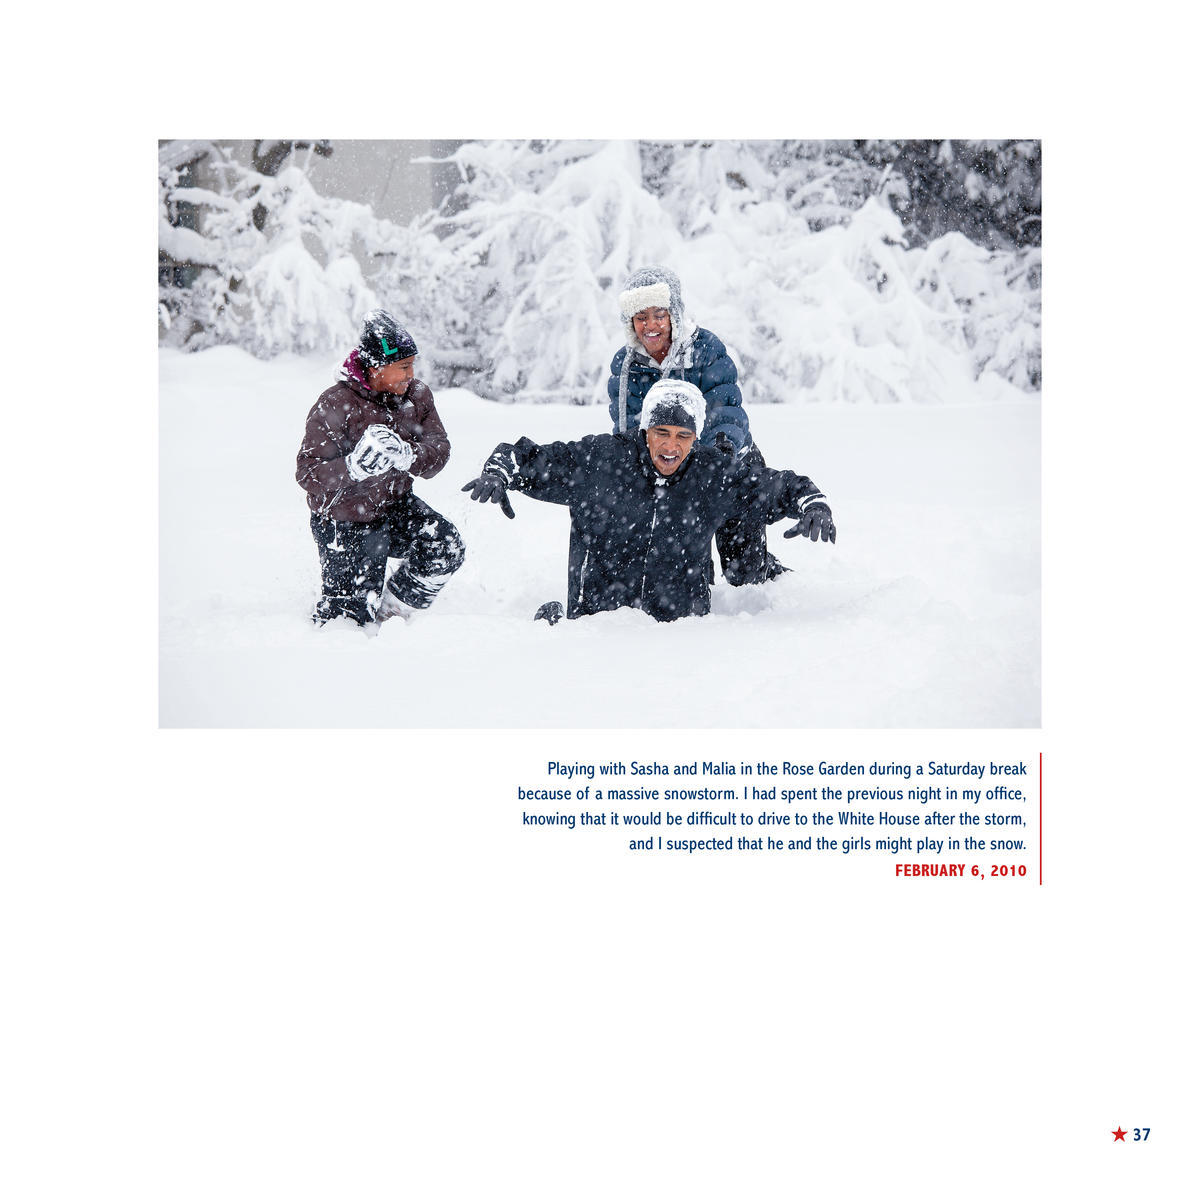 President Obama Playing In The Snow With Sasha and Malia, Exclusive Images from His White House Photographer's New Children's Book